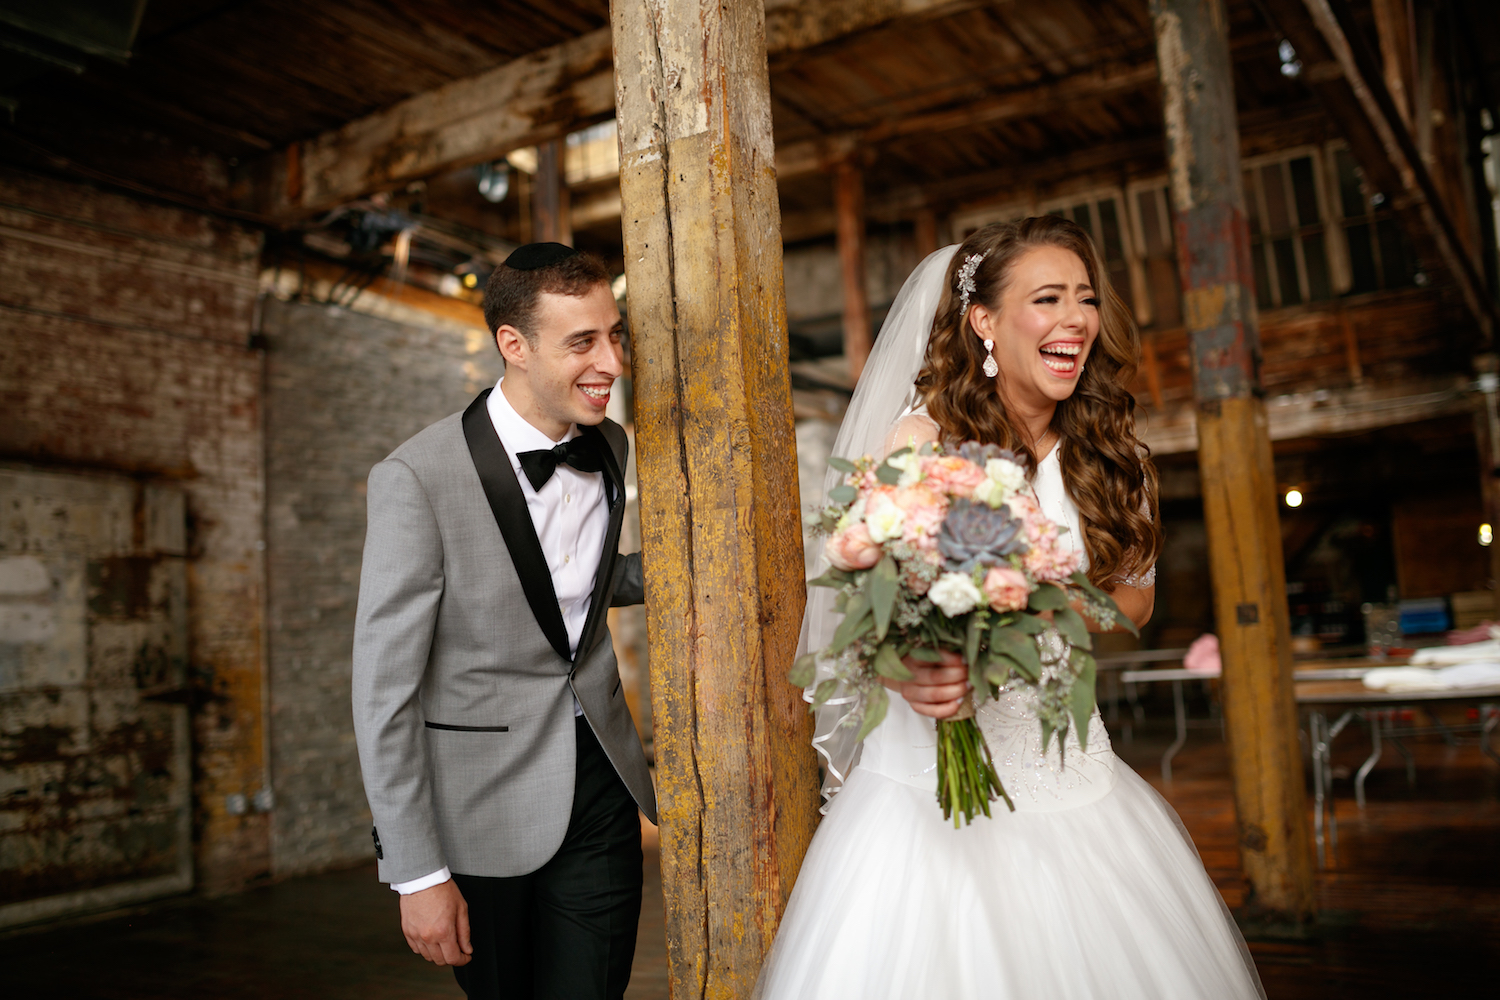 industrial-brooklyn-jewish-wedding-yonatanhalperin-photography-07